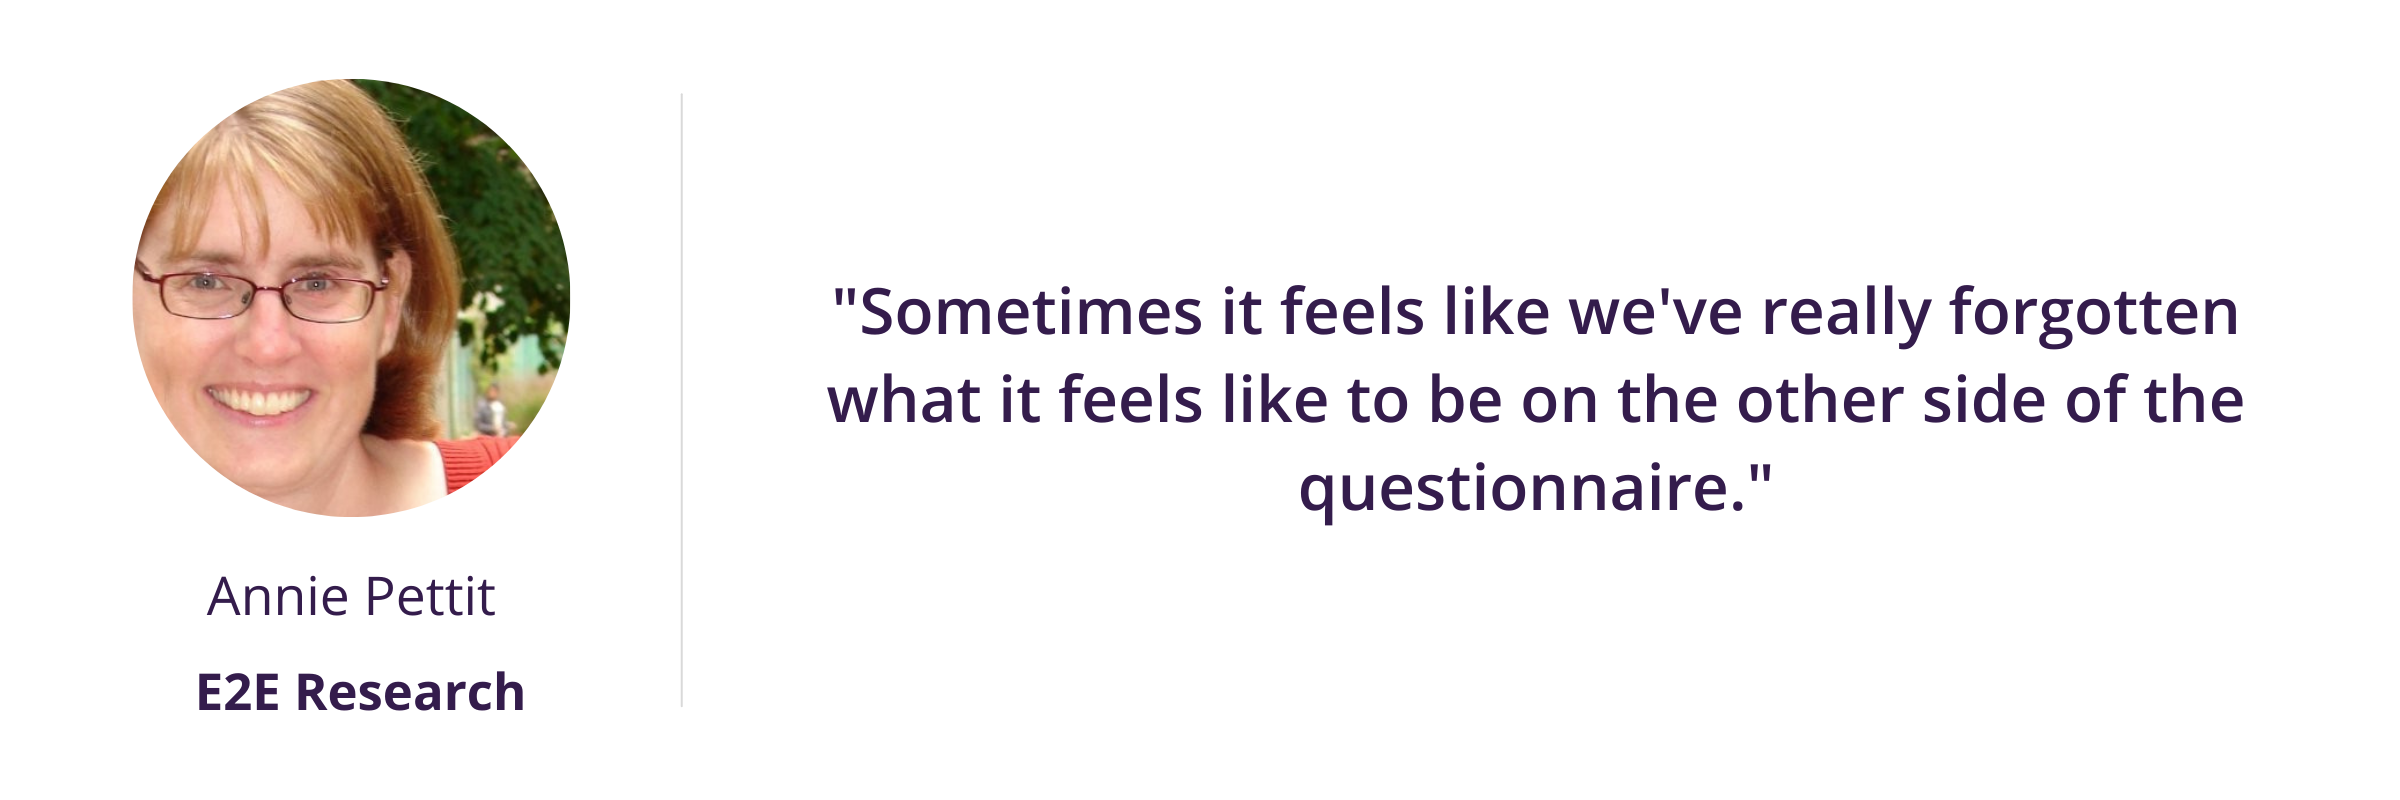 """""""Sometimes it feels like we've really forgotten what it feels like to be on the other side of the questionnaire."""""""